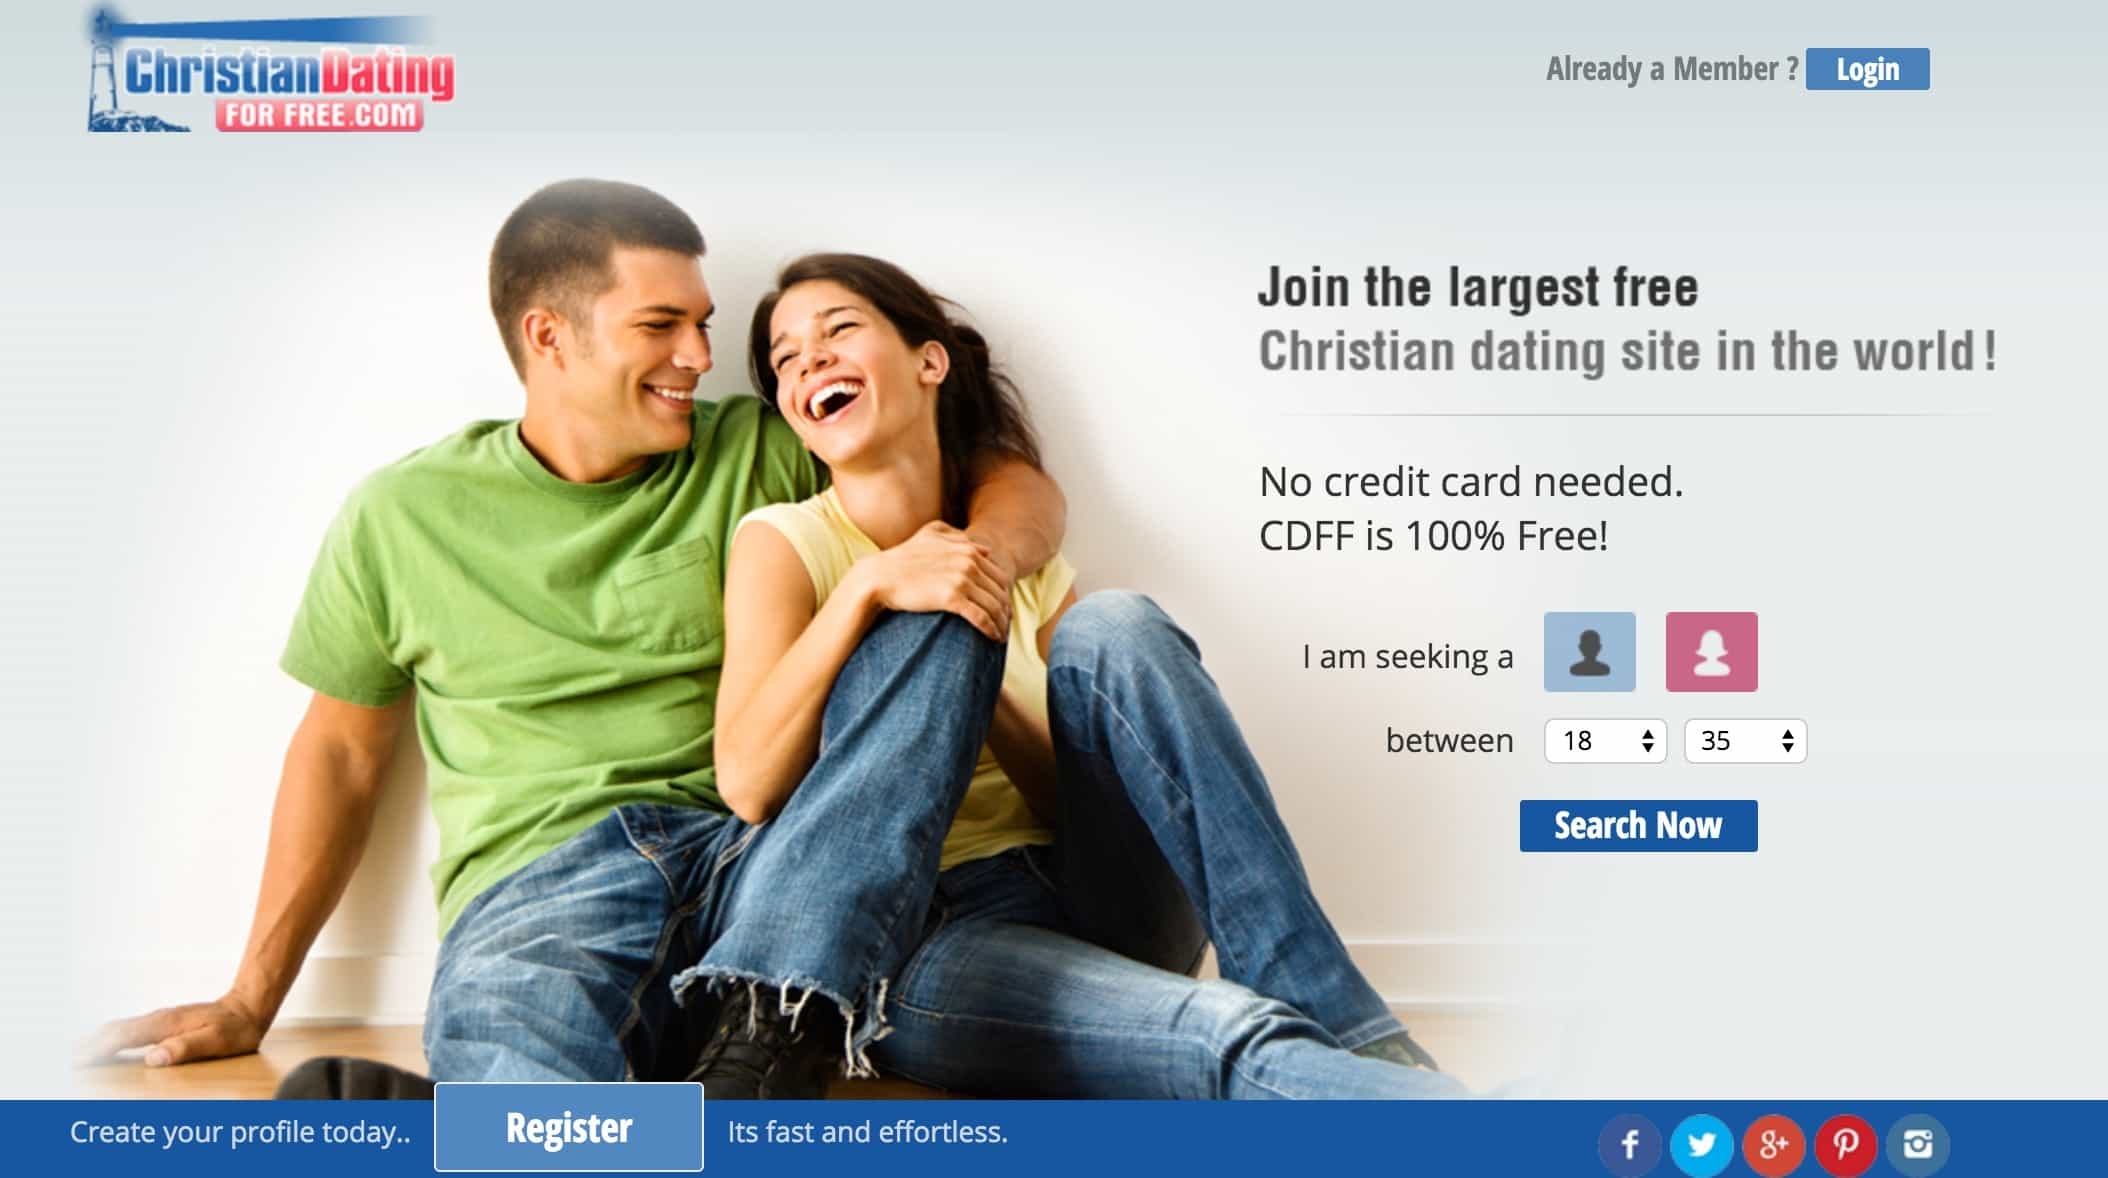 SingleSpirits - Free Spiritual Dating